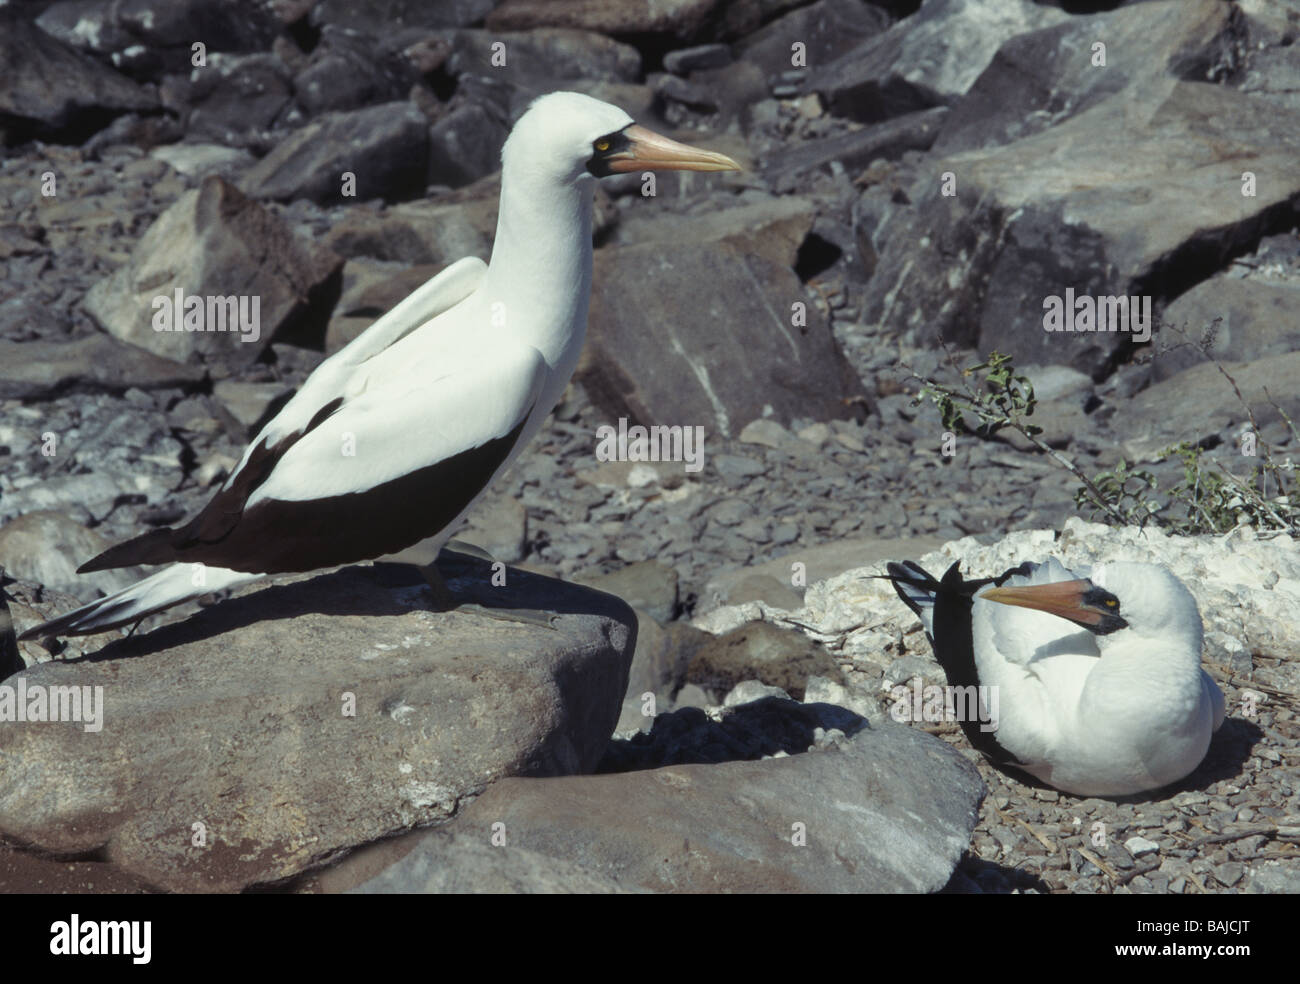 Galapagos Islands. Masked Booby 'Sula dactylatra' Pair,one on nest and one standing by.Hood Island. - Stock Image